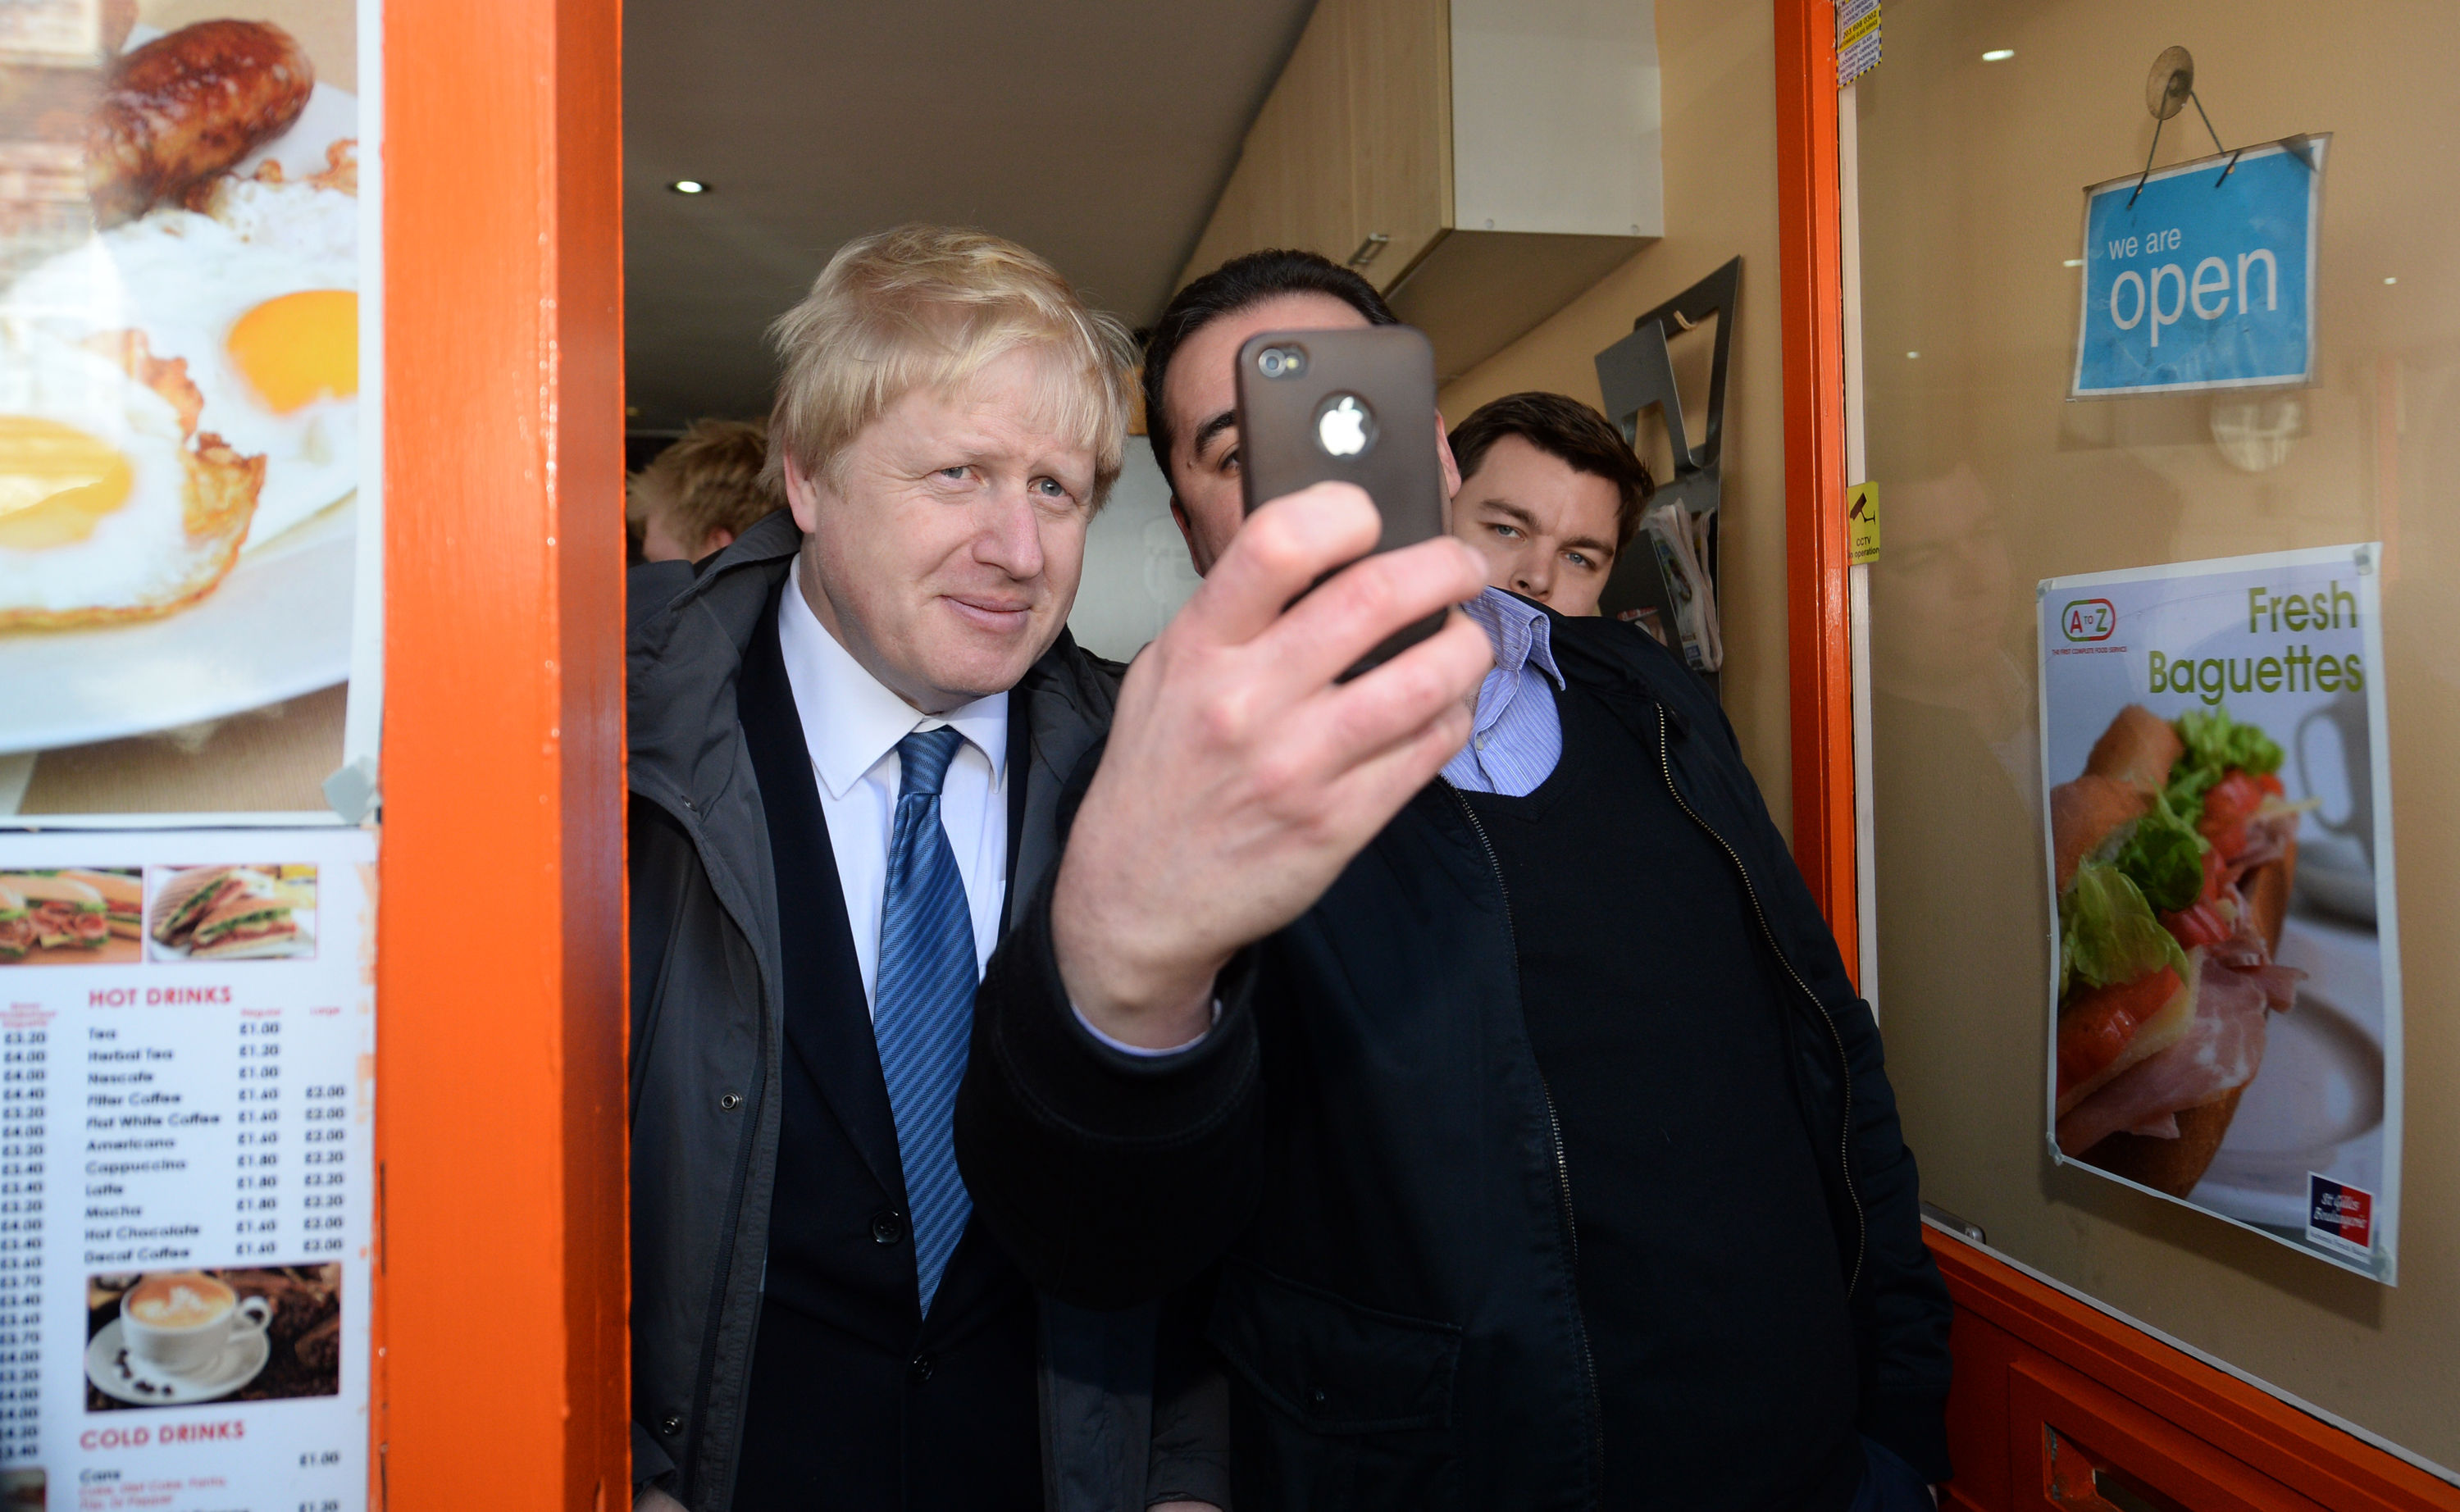 Mayor of London Boris Johnson has a selfie taken with a member of the public after launching the Conservative London campaign at Hartley Hall in Mill Hill, London.